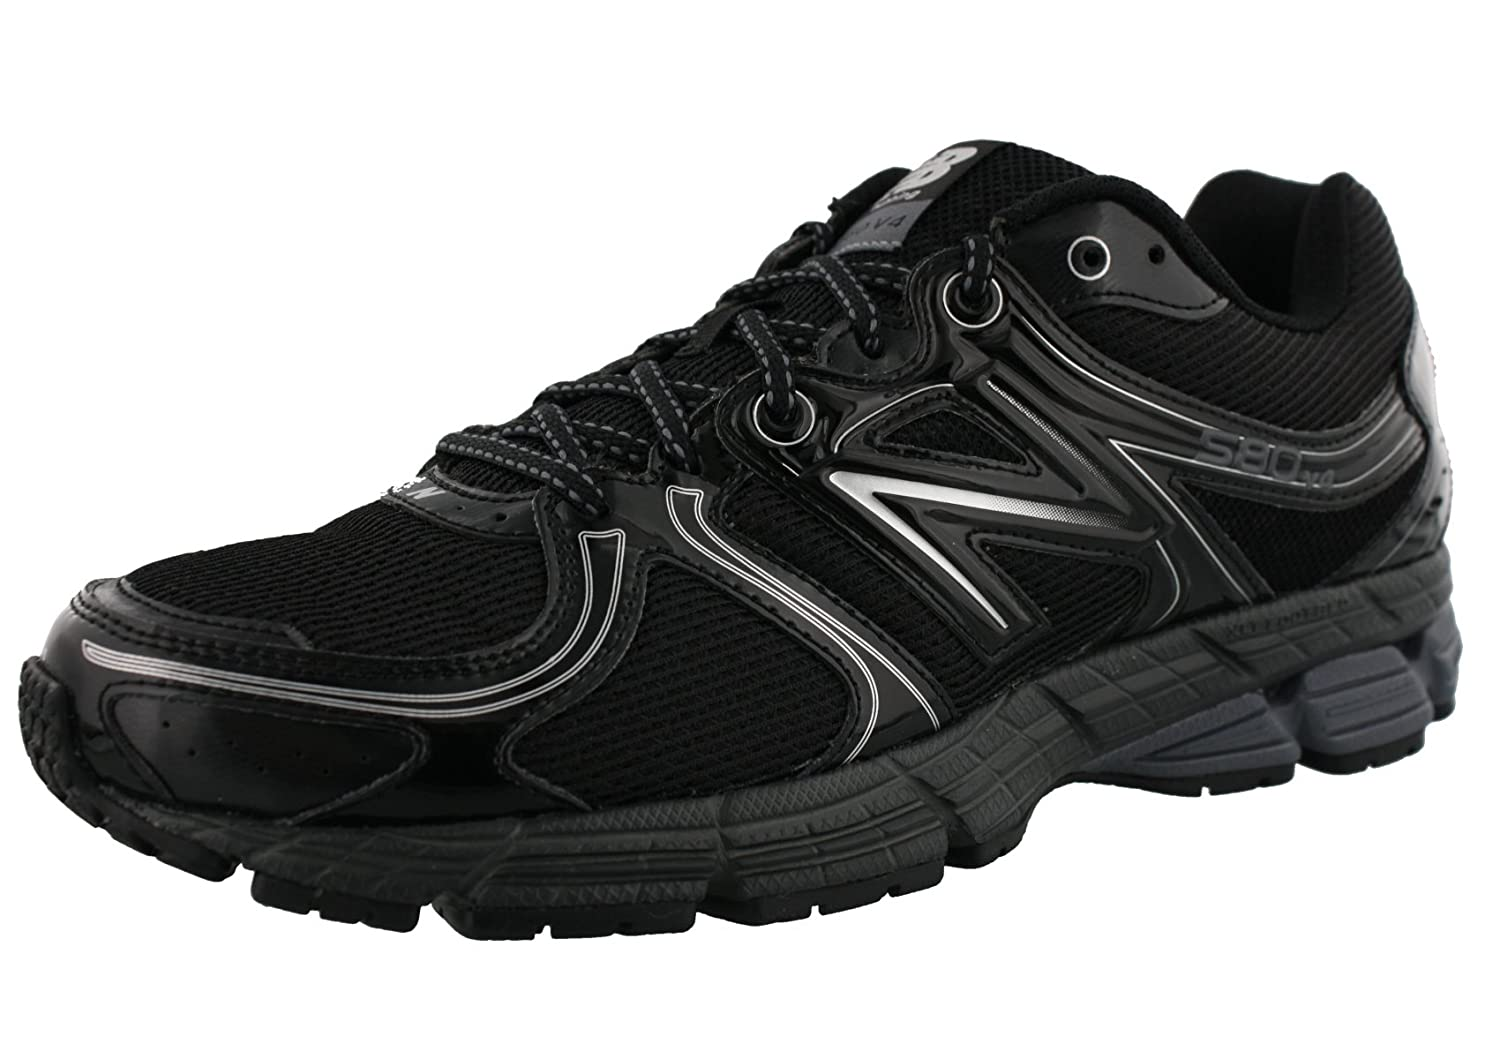 New Balance Men's Running Sneaker B01AAT72V0 9 4E US|Black/Silver